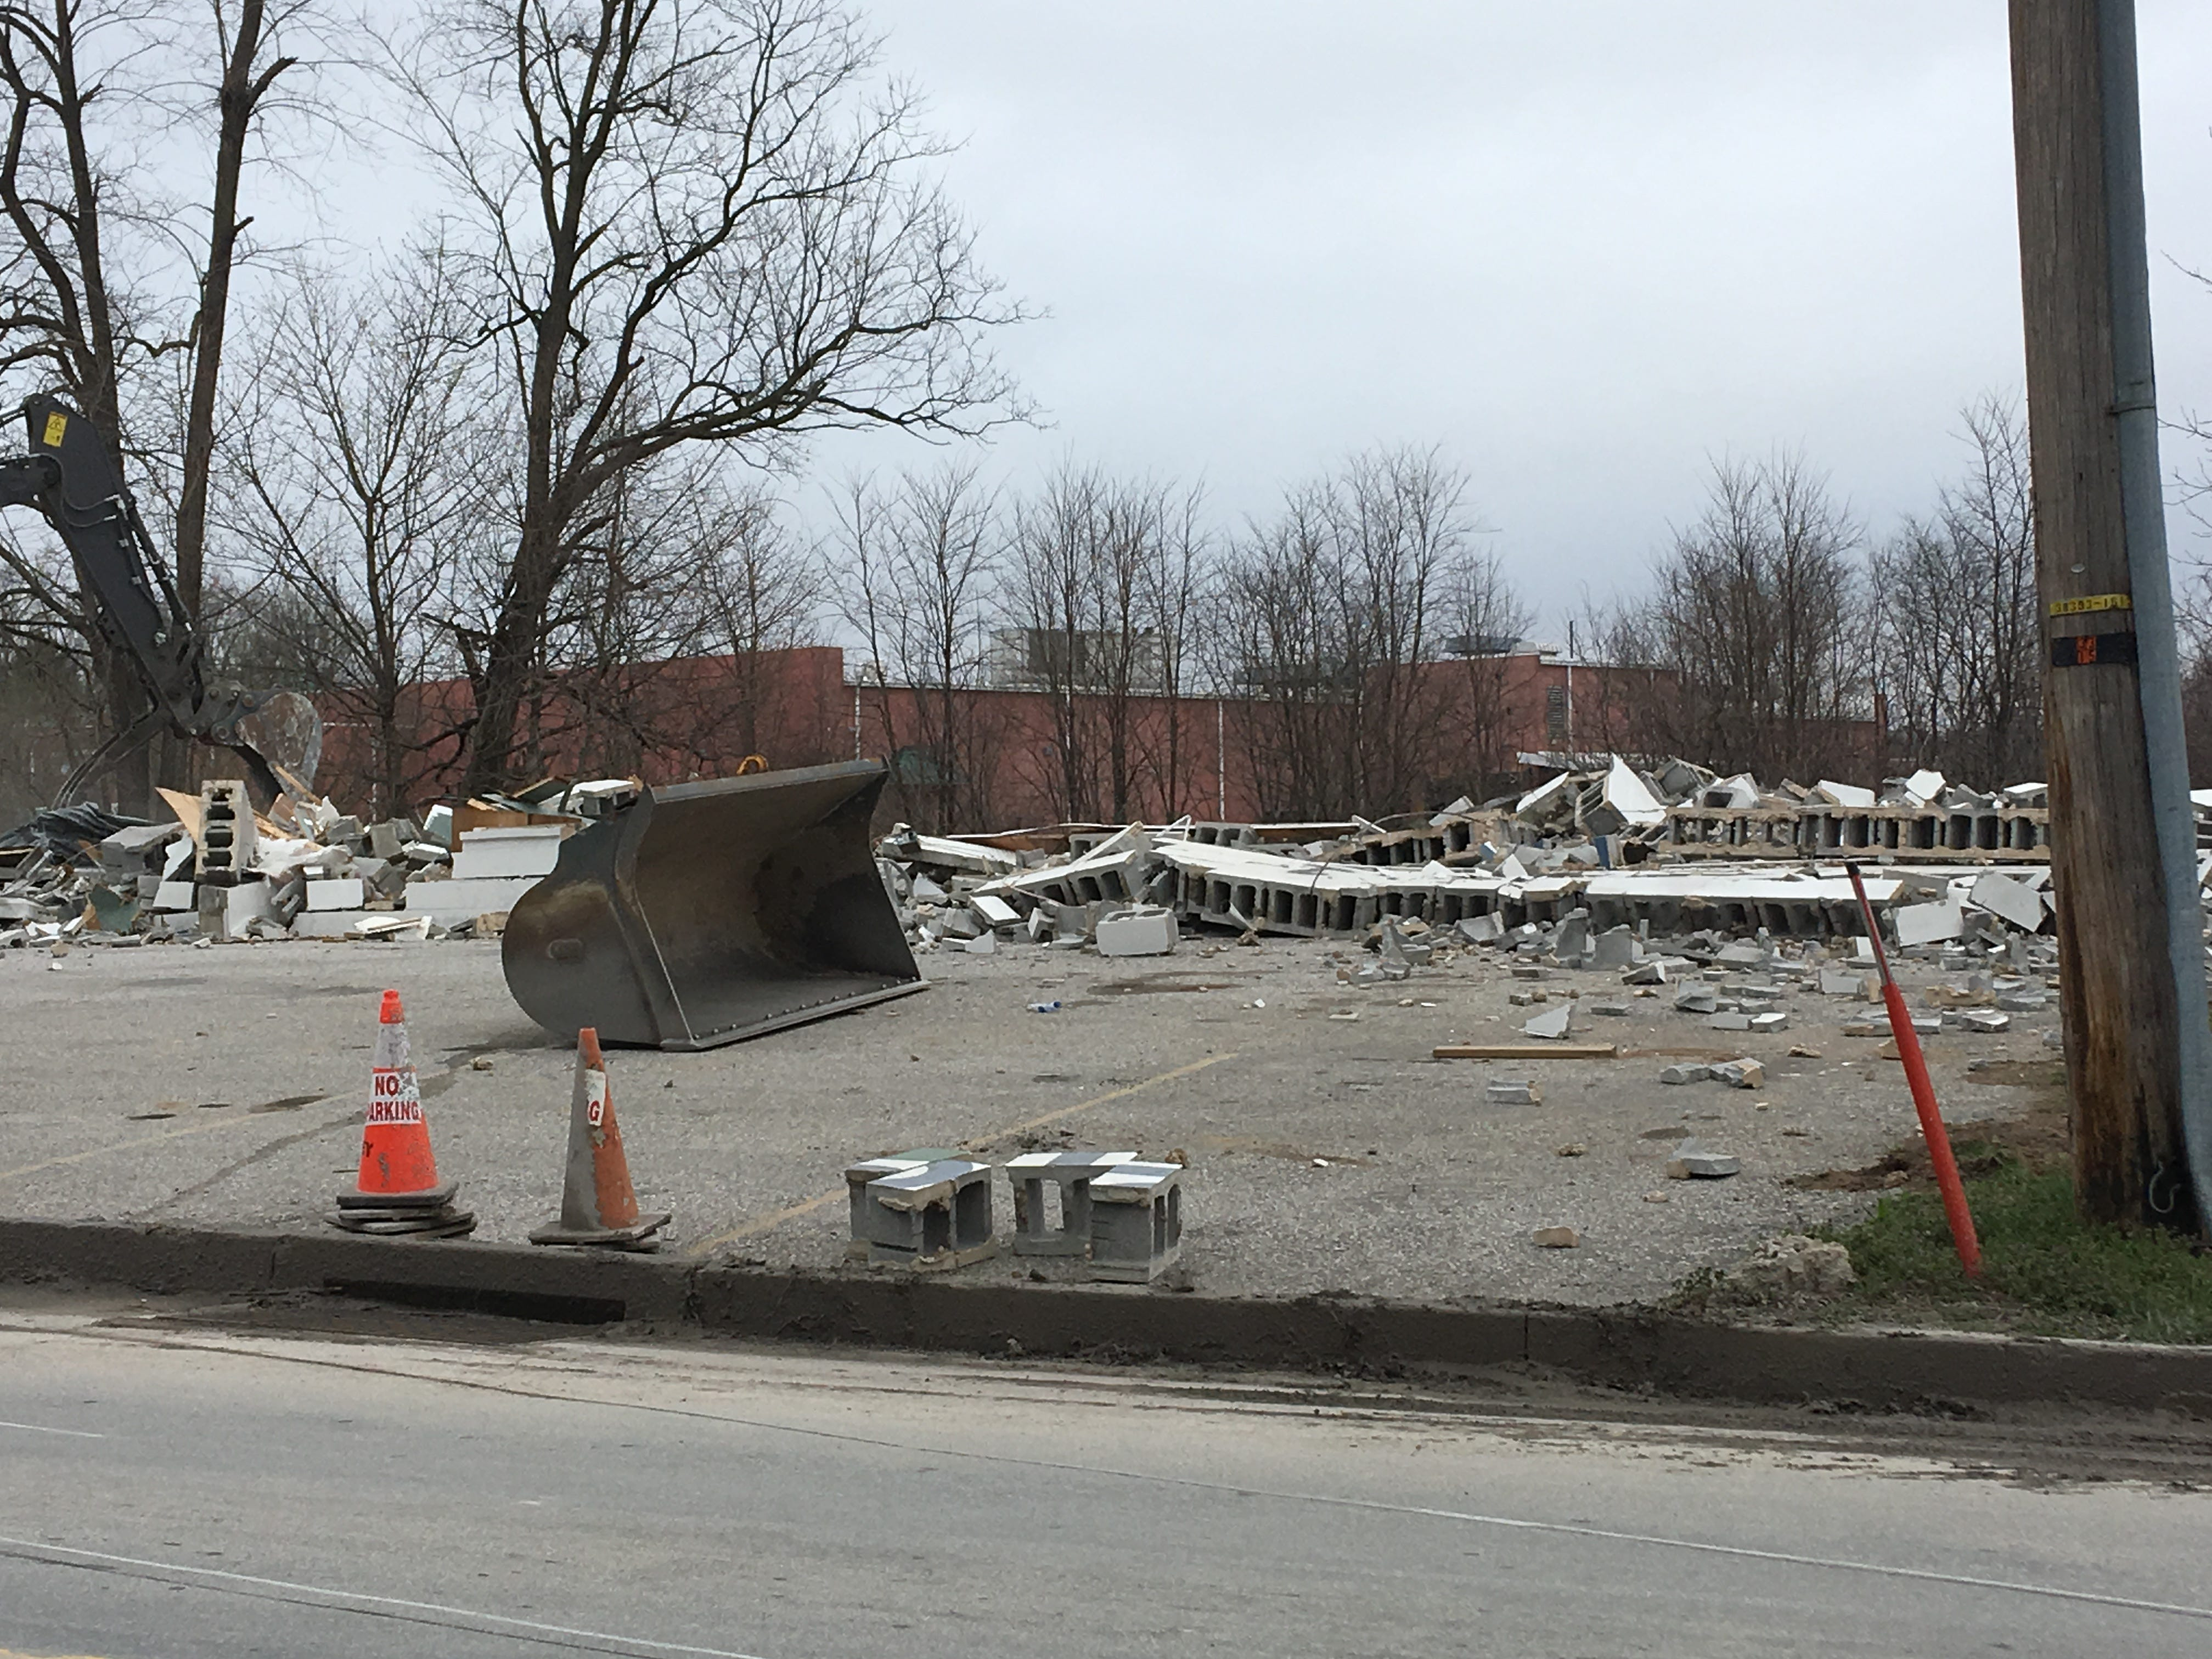 A look at the rubble left from the demolition.